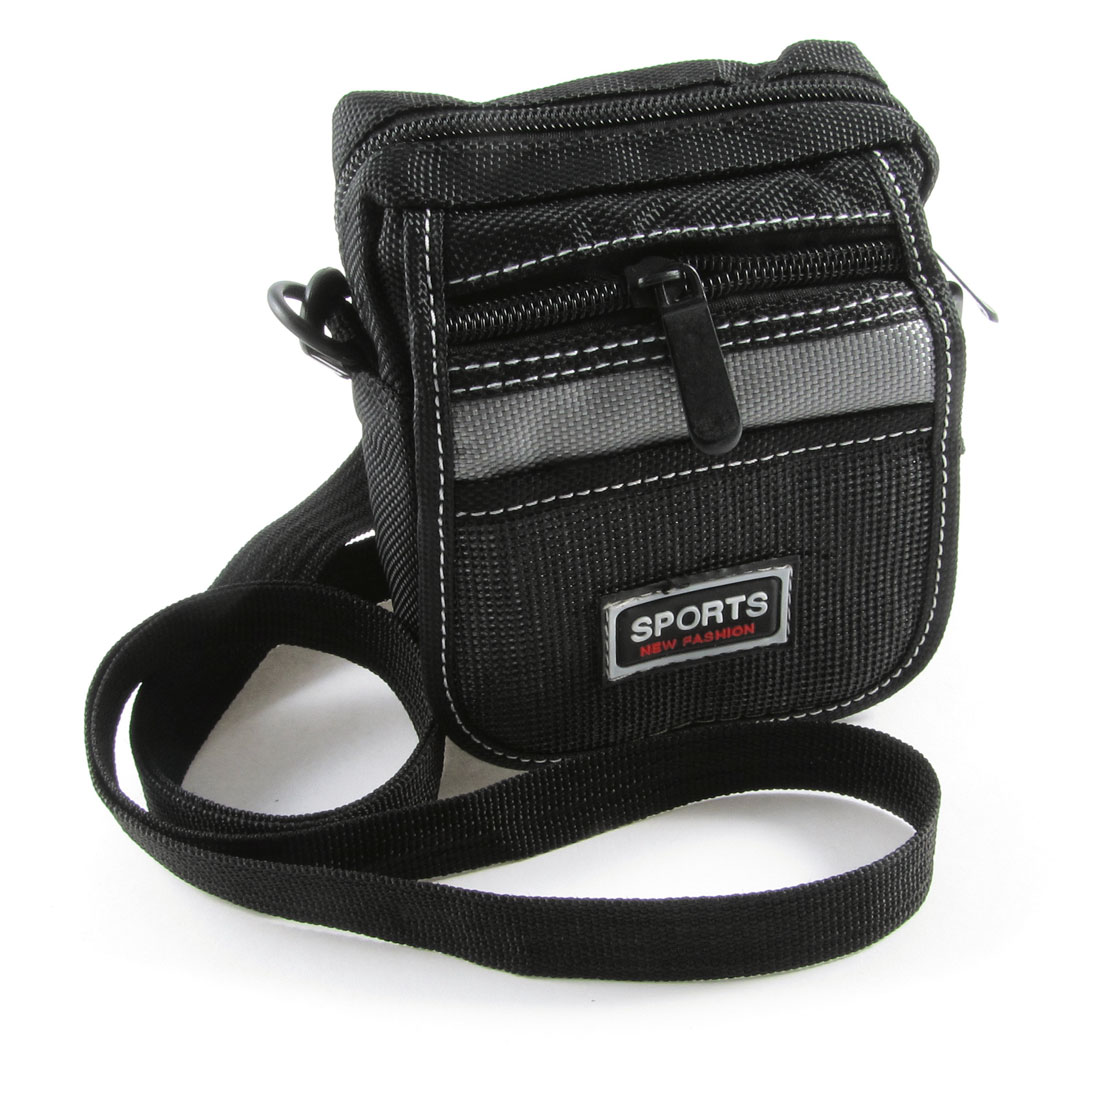 Man Black Gray Nylon 3 Pockets Adjustable Strap Waist Bag Pouch